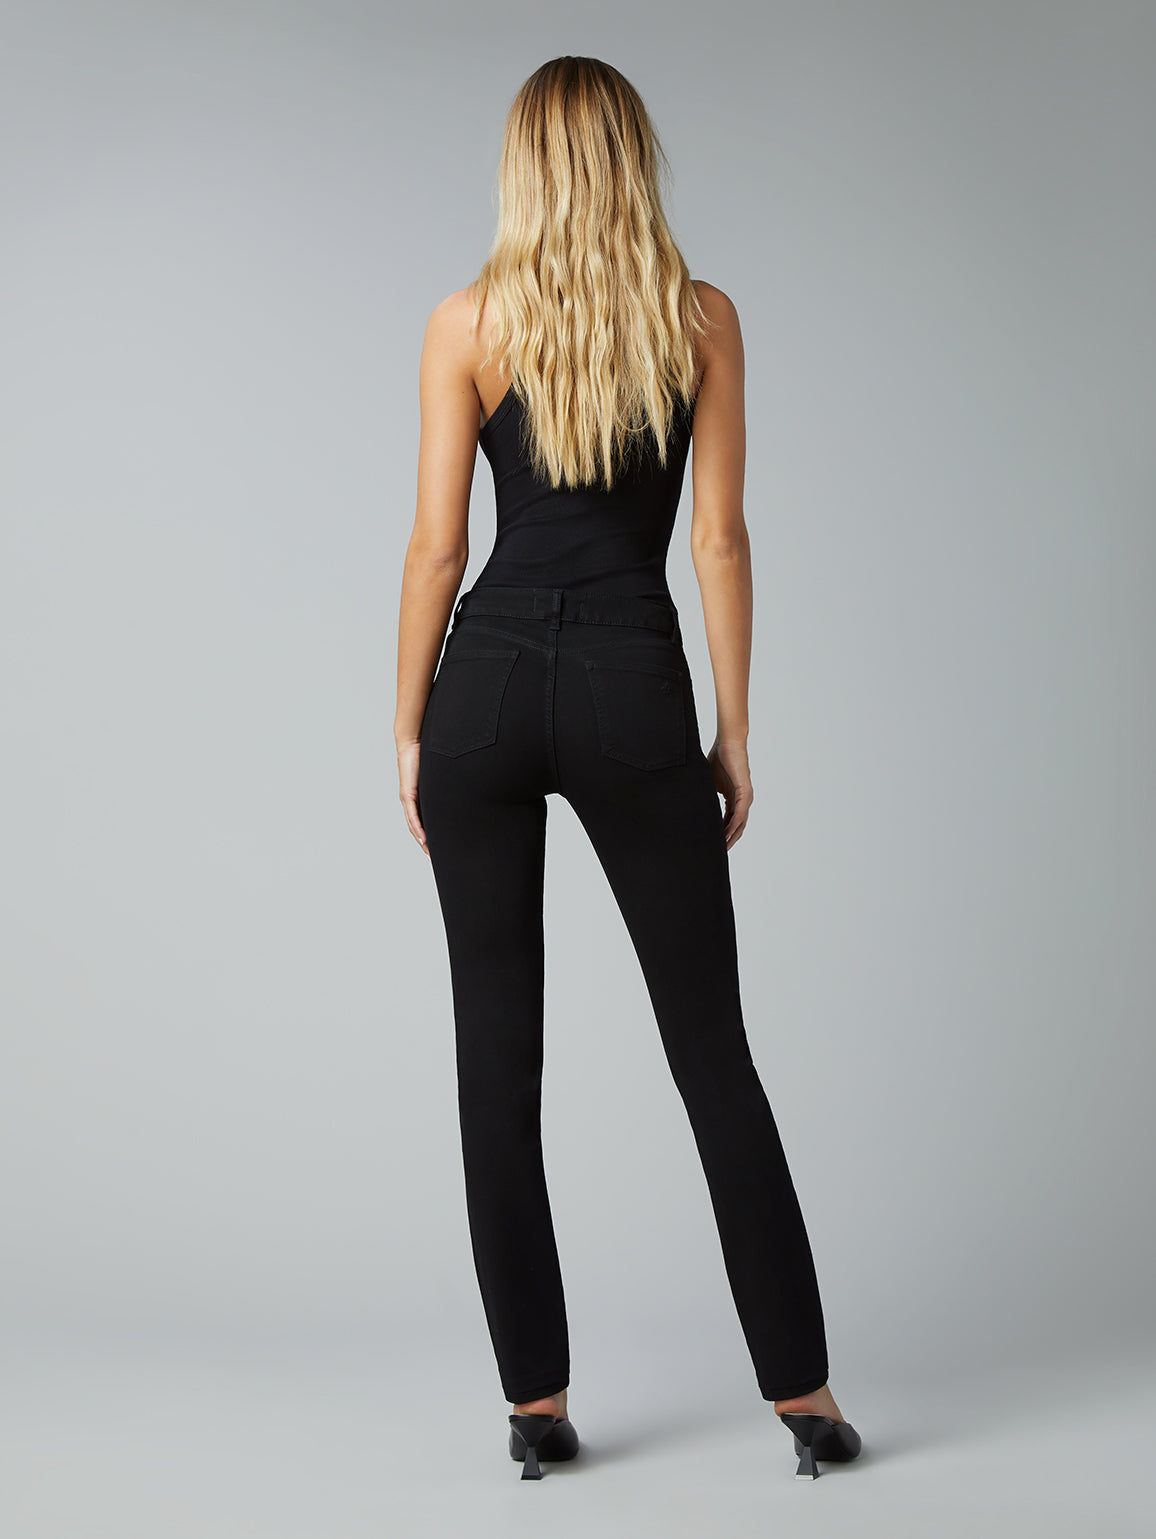 Coco Straight Mid Rise Curvy 34"